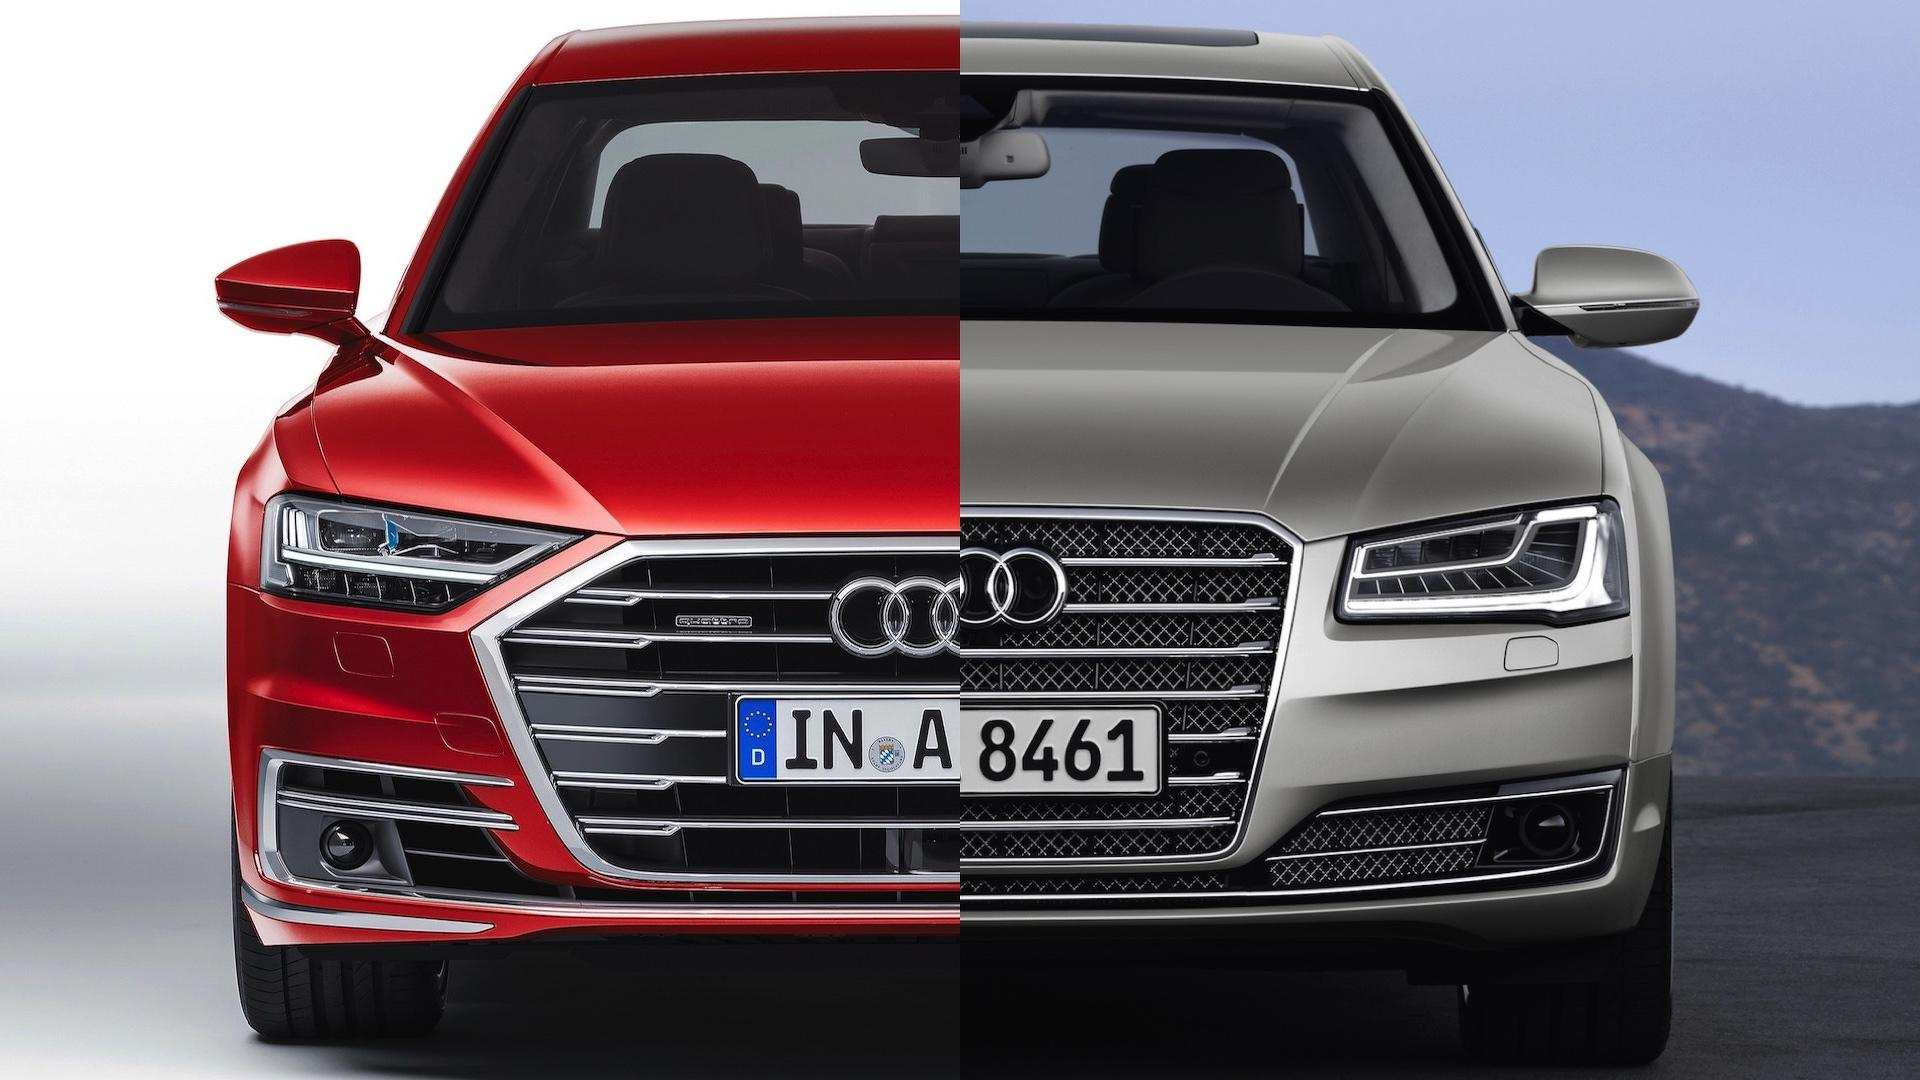 32 The Best 2019 Audi A8 L In Usa Research New